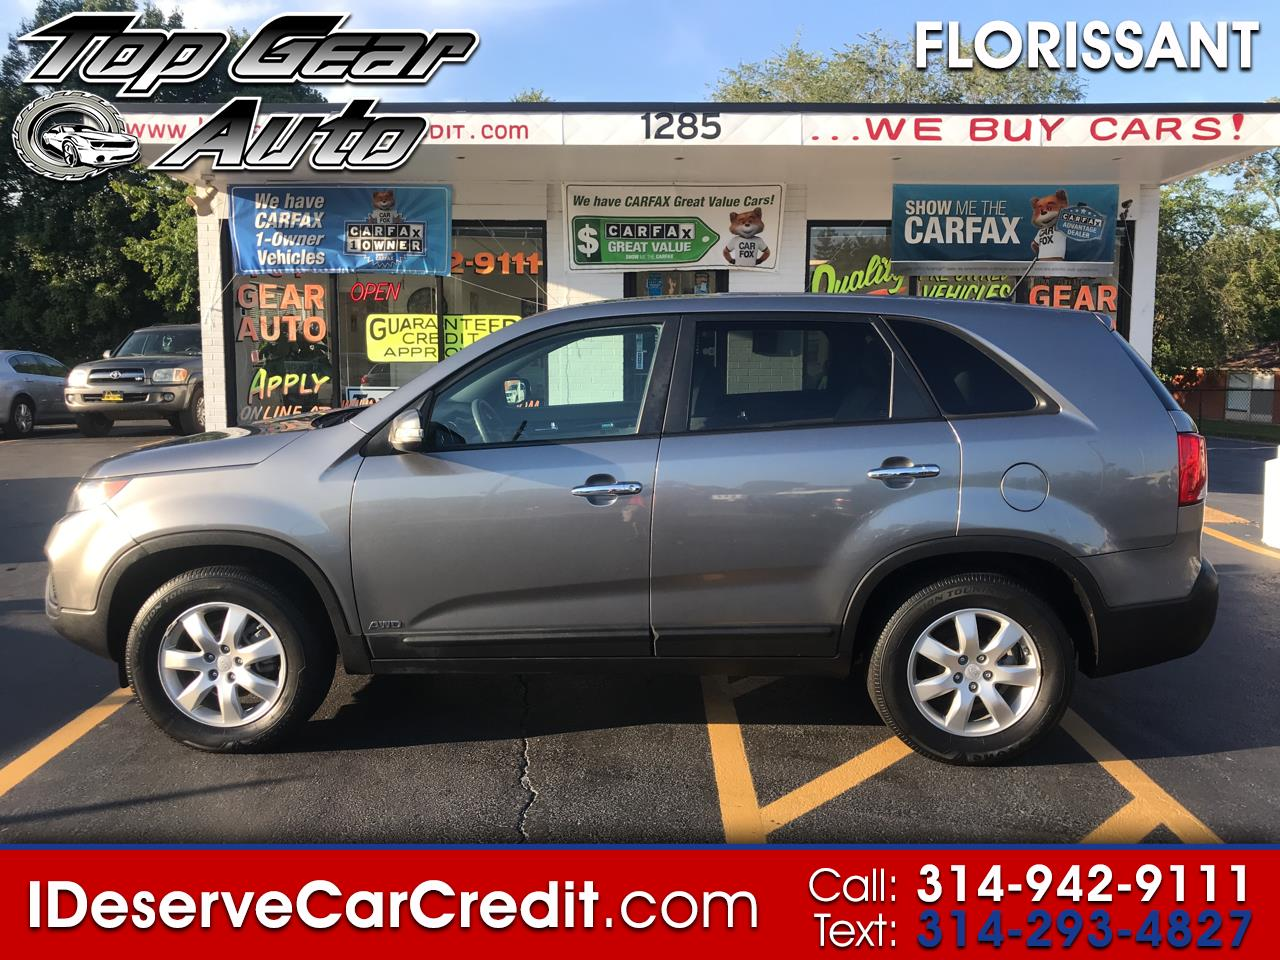 2011 Kia Sorento AWD ALLOYS SUPER CLEAN! GREAT VALUE!